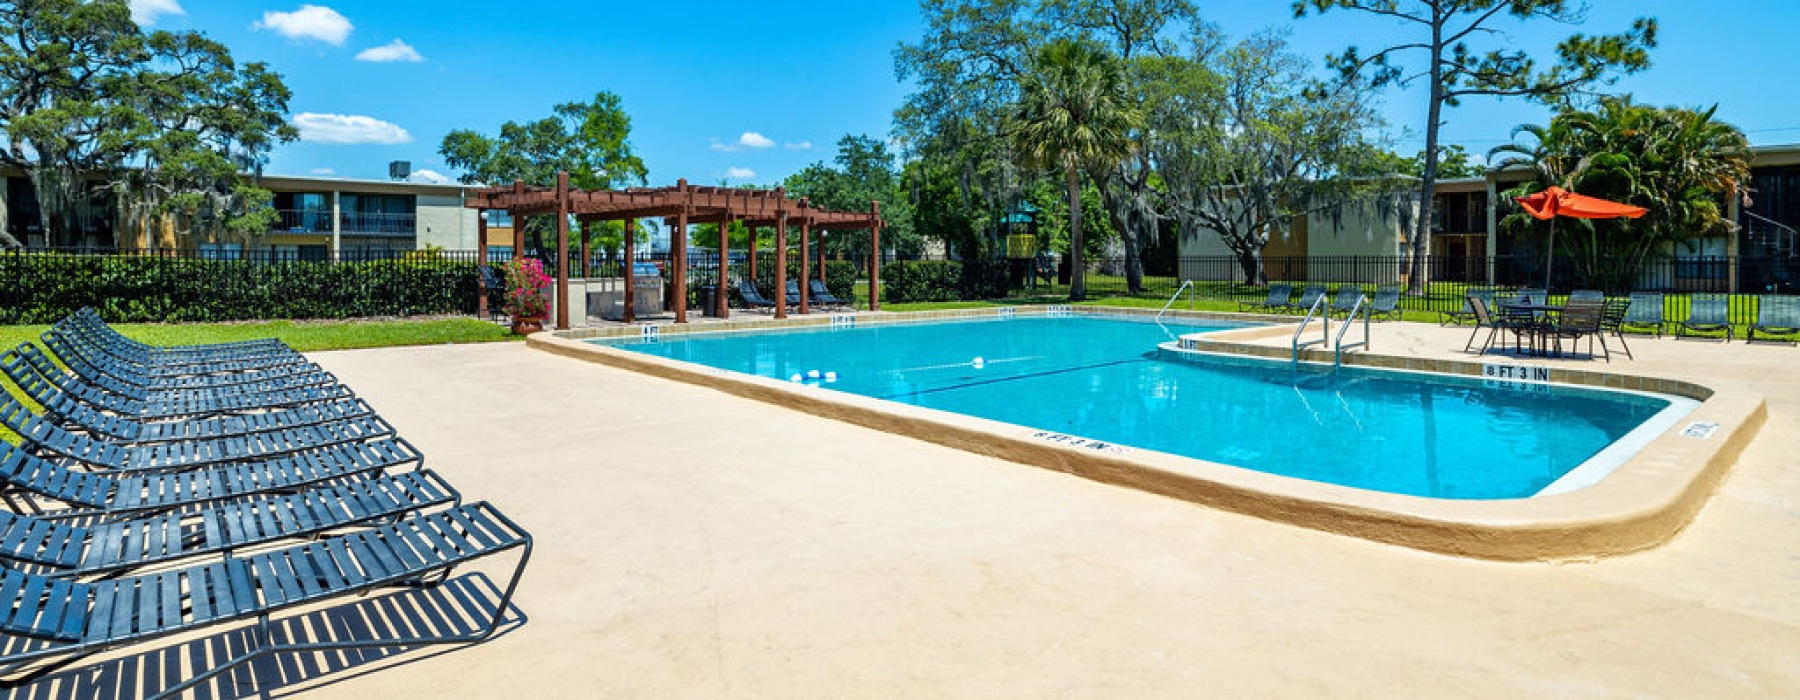 The Pointe at Clearwater Swimming Pool